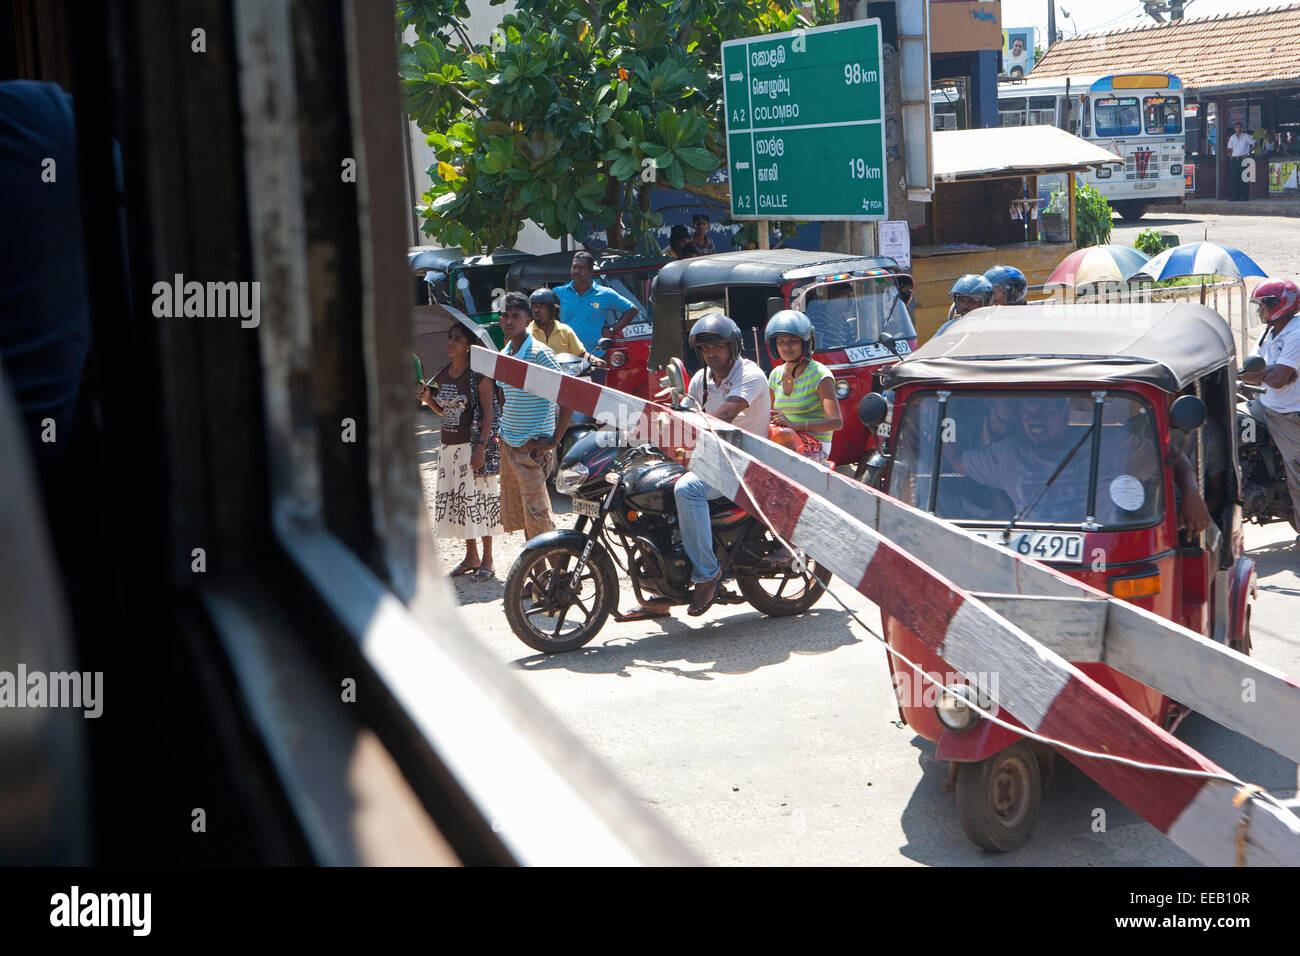 BUSY TRAFFIC AT LEVEL CROSSING IN COLOMBO - Stock Image